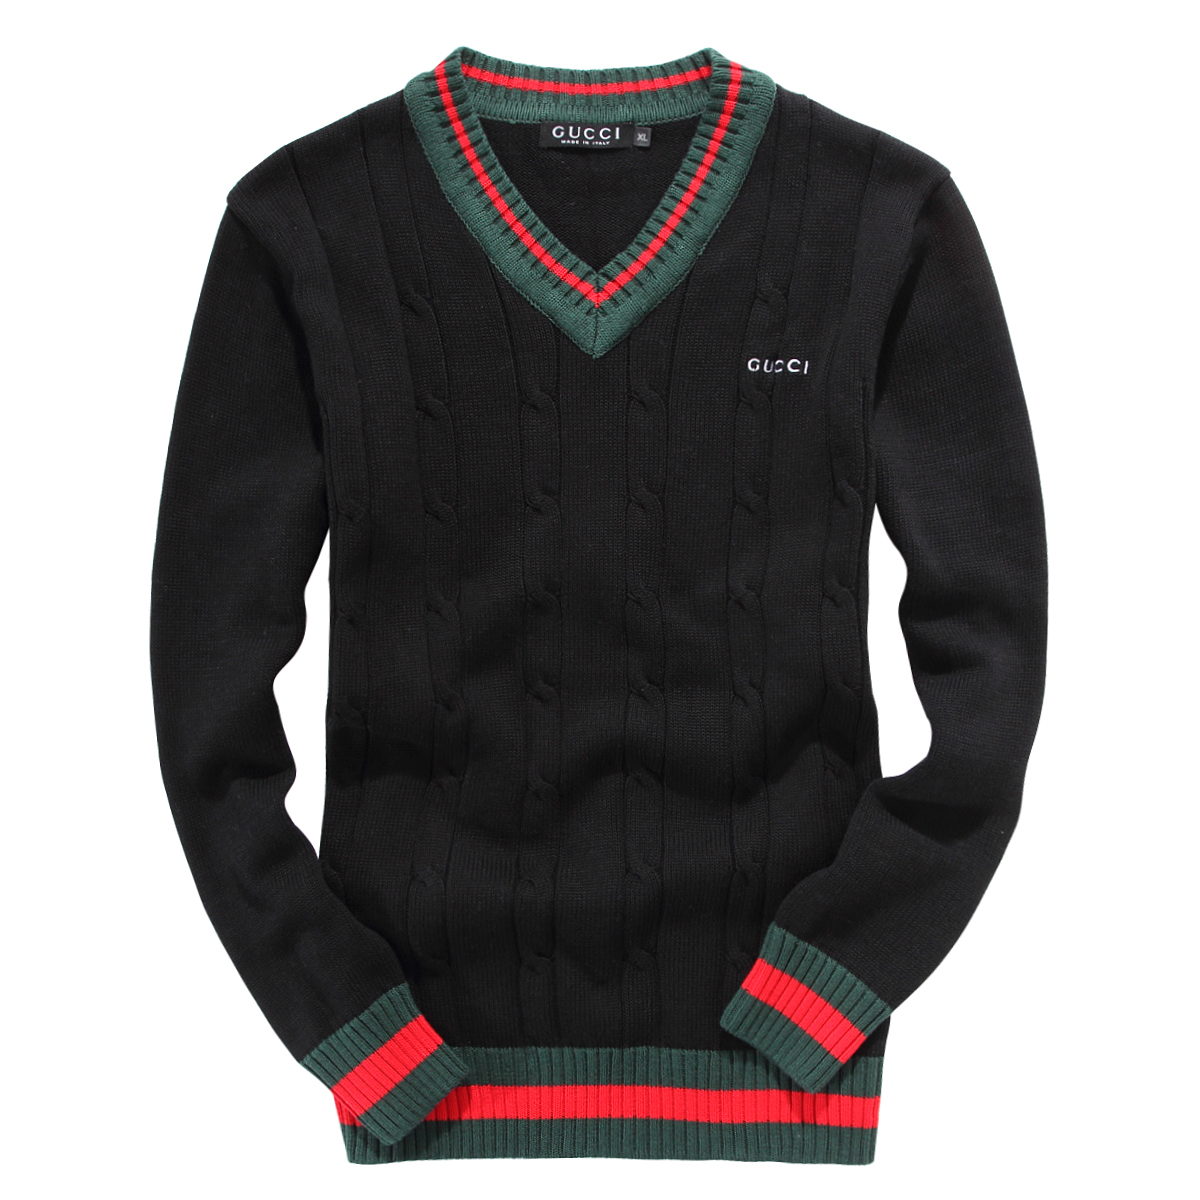 Get classic coolnup03t.gq style from coolnup03t.gq Factory. Shop discount men's clothing, women's clothing, and kids clothing. Find great deals on sweaters, dresses, suits, shoes, accessories and jackets.